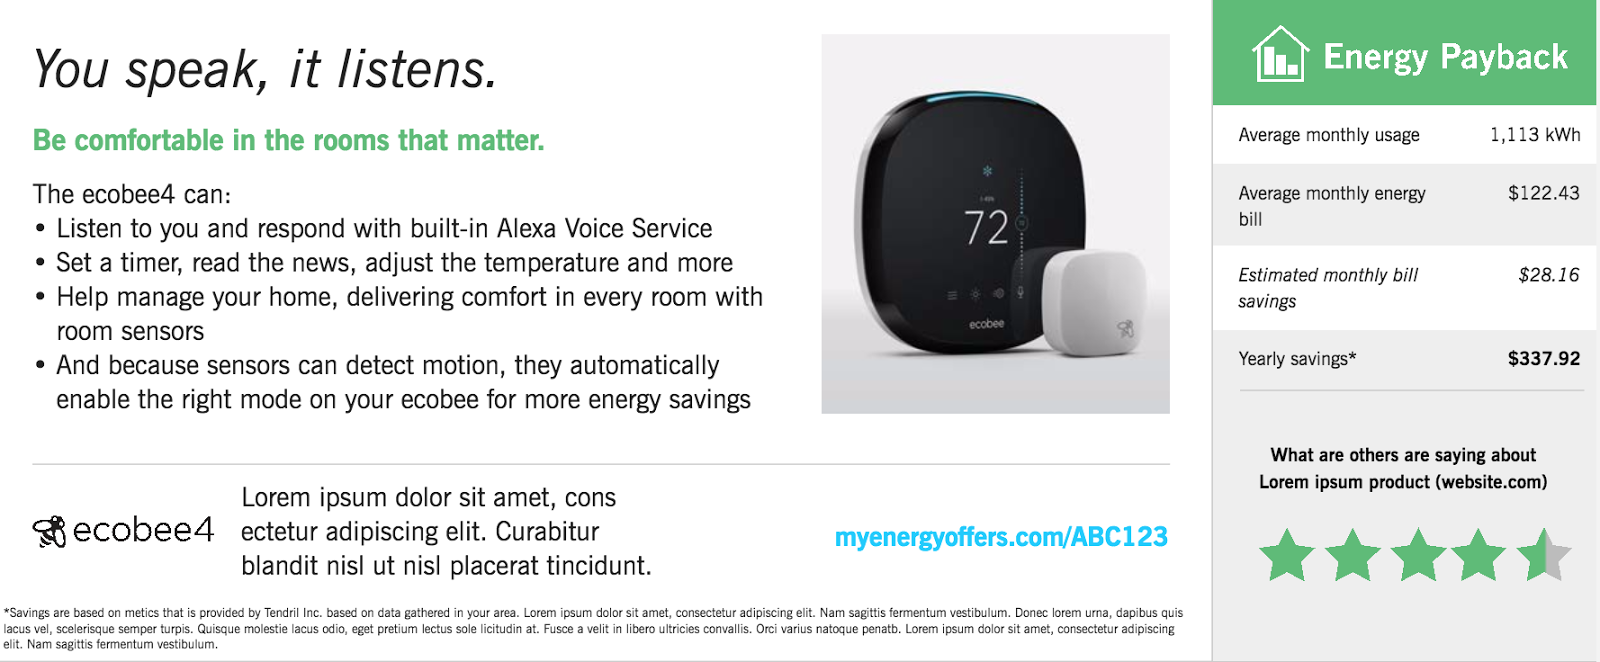 Sample advertisement for a smart thermostat